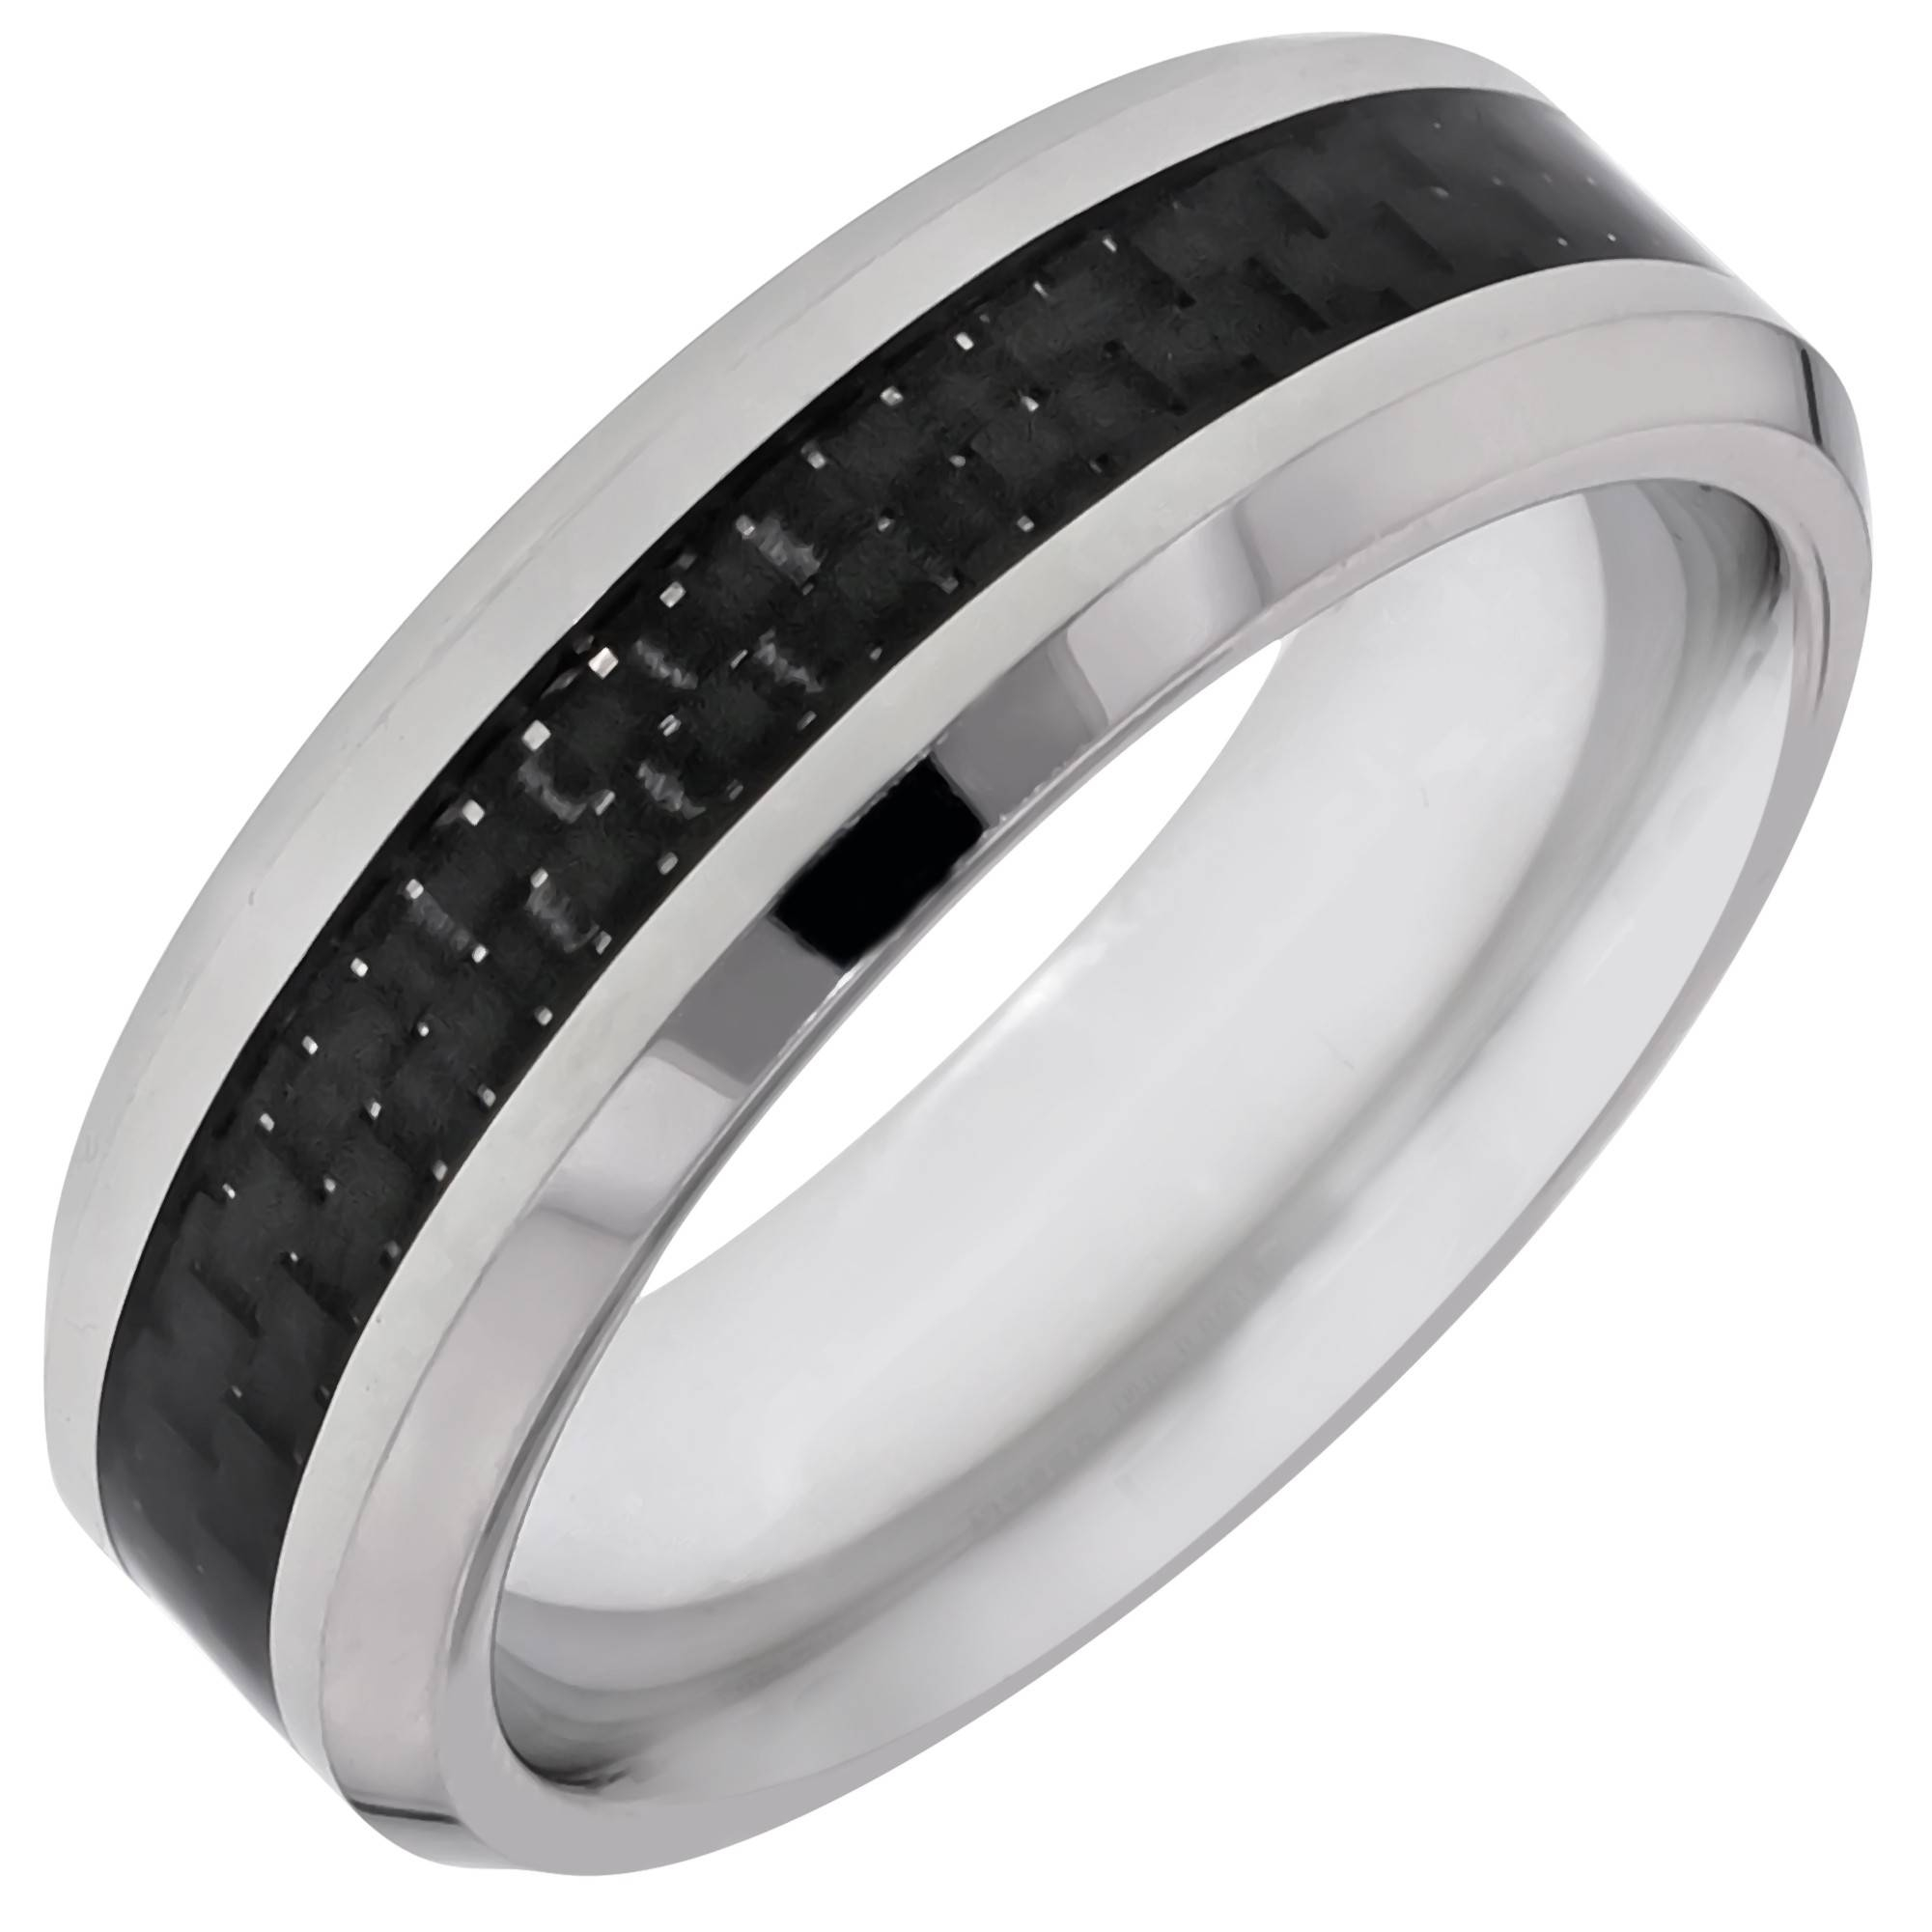 com band white dallaswholesalediamonds rings wedding platinum wholesale black collections raised gold bands